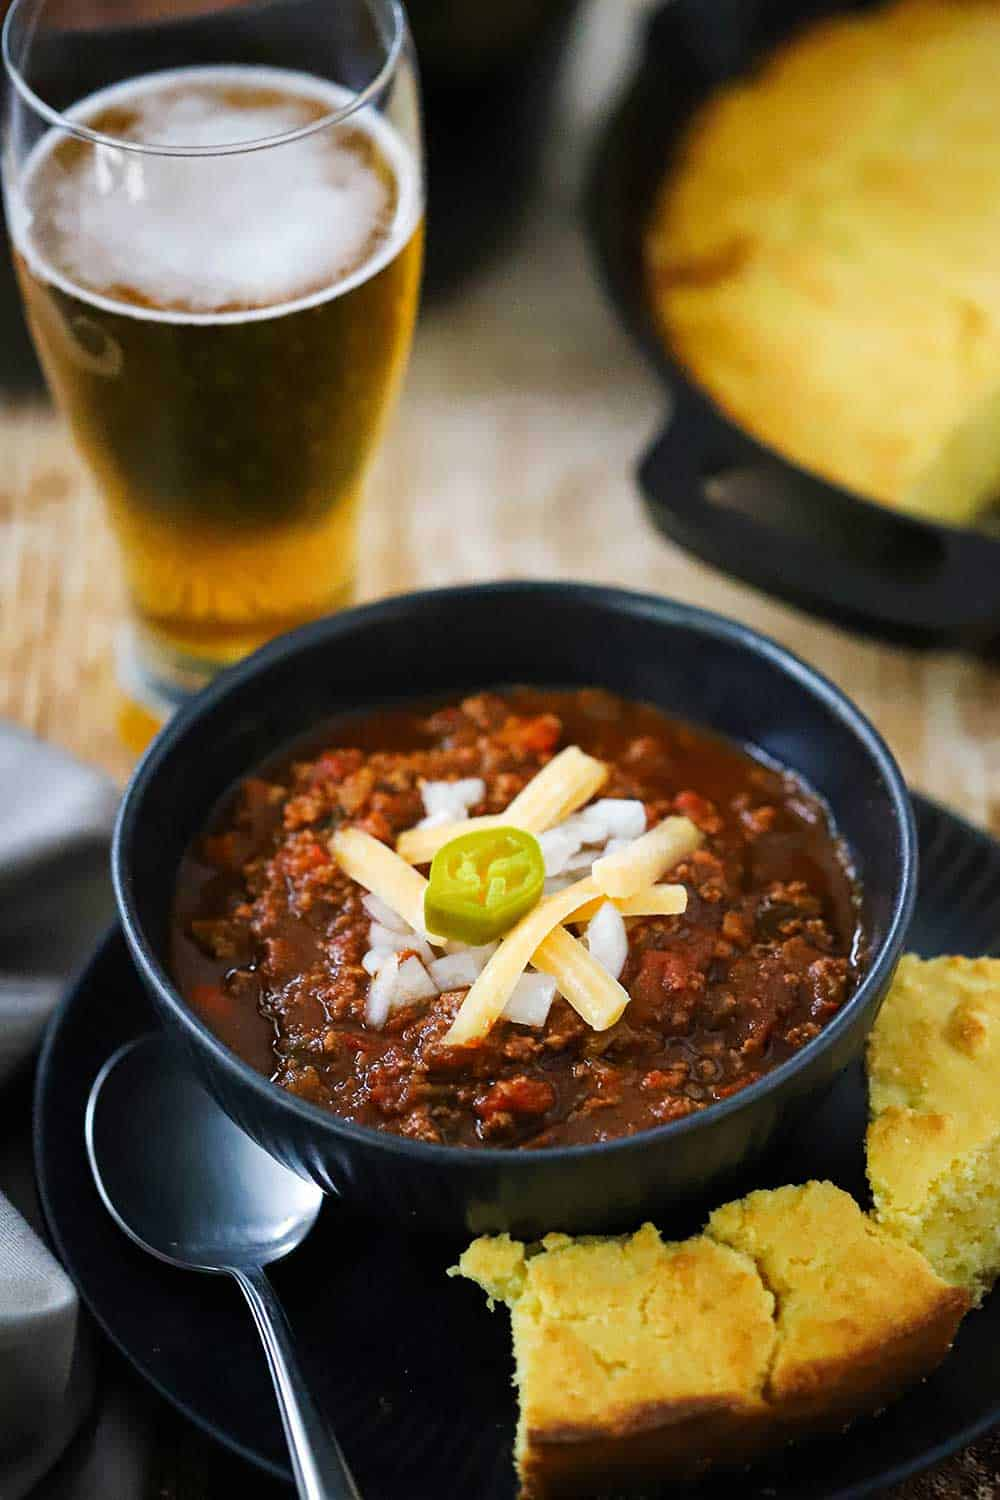 A dark bowl filled with turkey chili topped with shredded cheese and a sliced jalapeno all sitting next to a tall glass of beer.